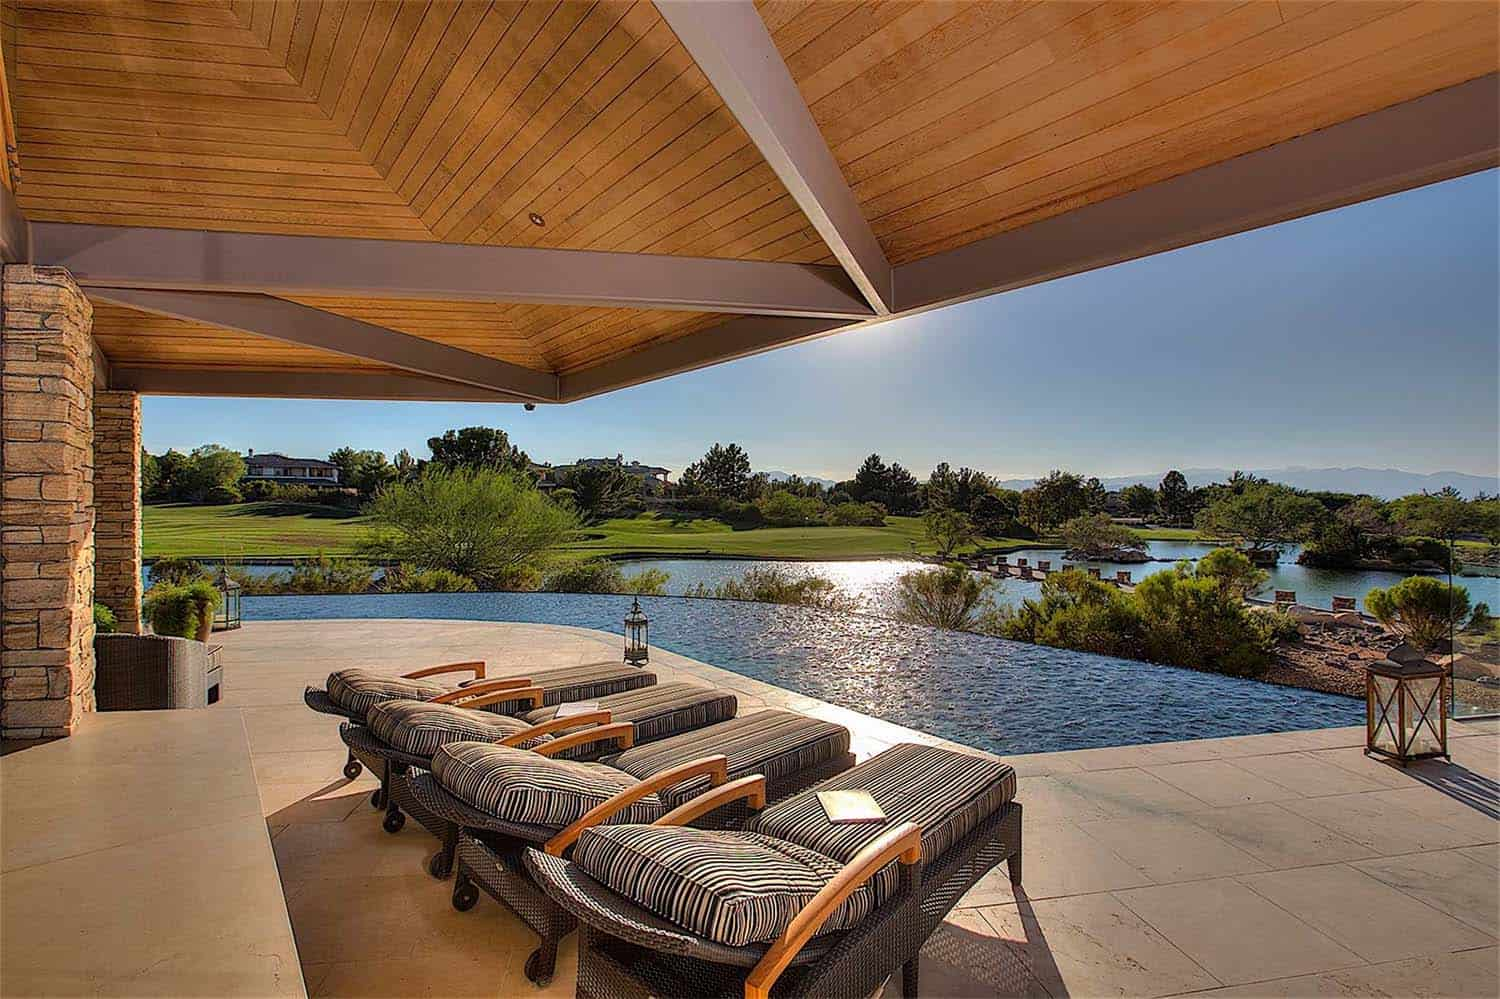 luxury-contemporary-home-design-gordon-rogers-39-1-kindesign